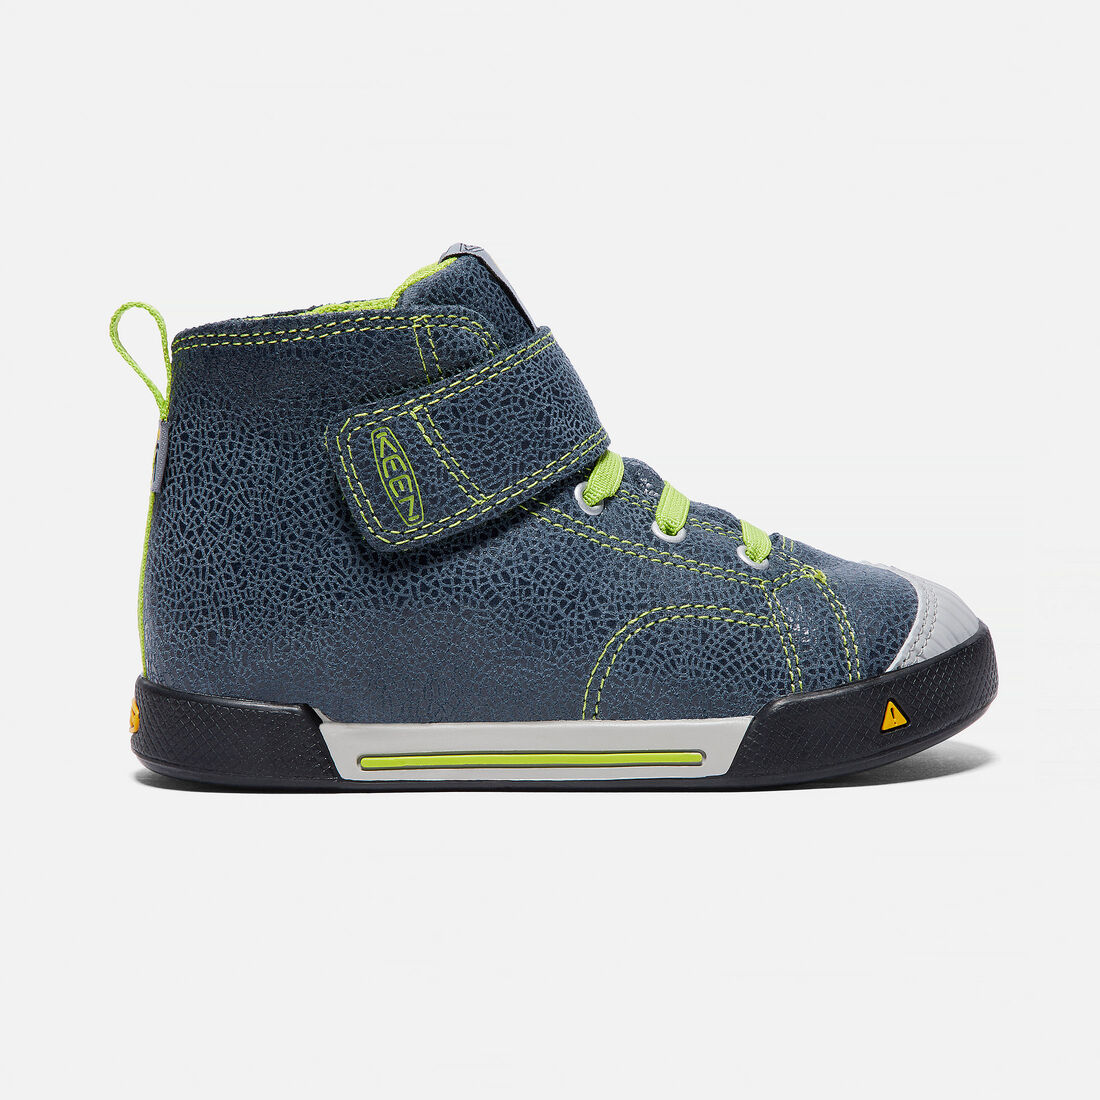 Little Kids' Encanto Scout High Top in Black/Macaw - large view.